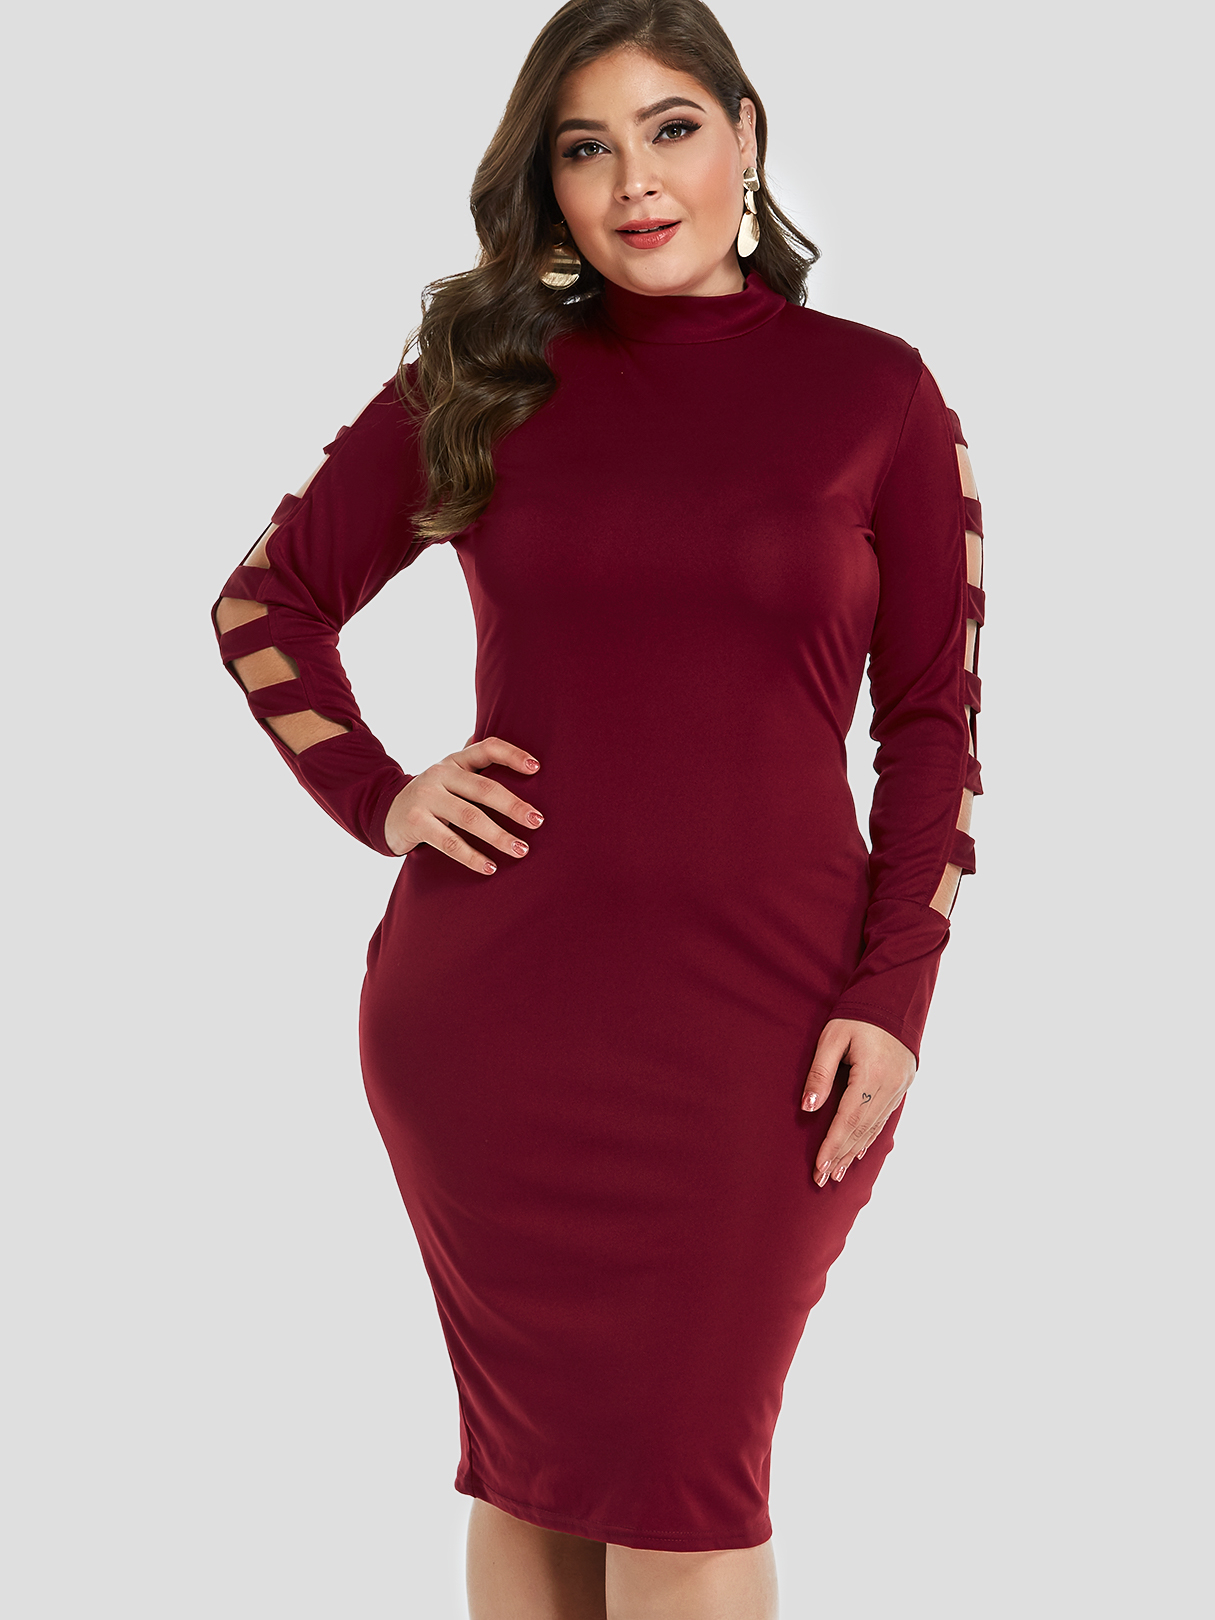 Plus Size Burgundy Cut Out Bodycon Midi Dress